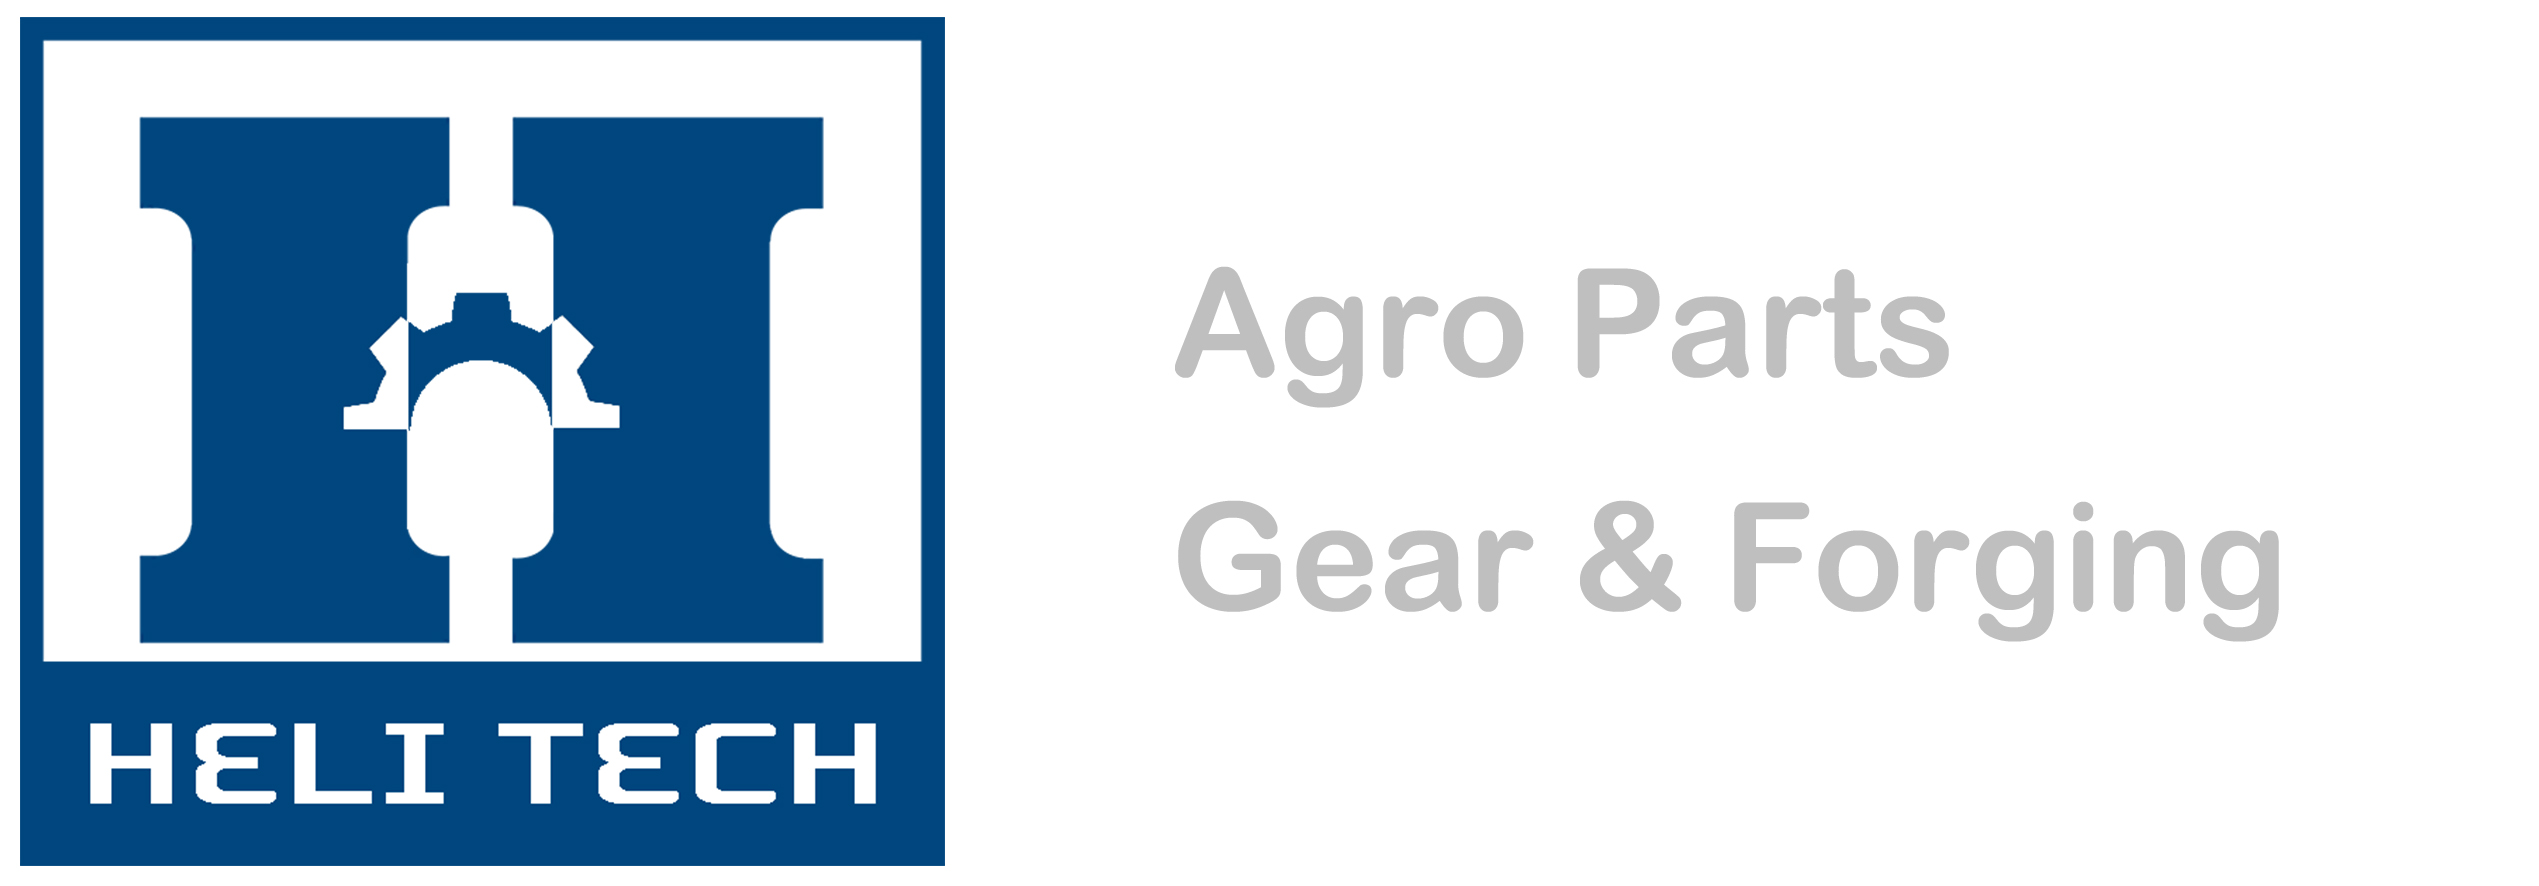 Agro Parts Gear & Forging